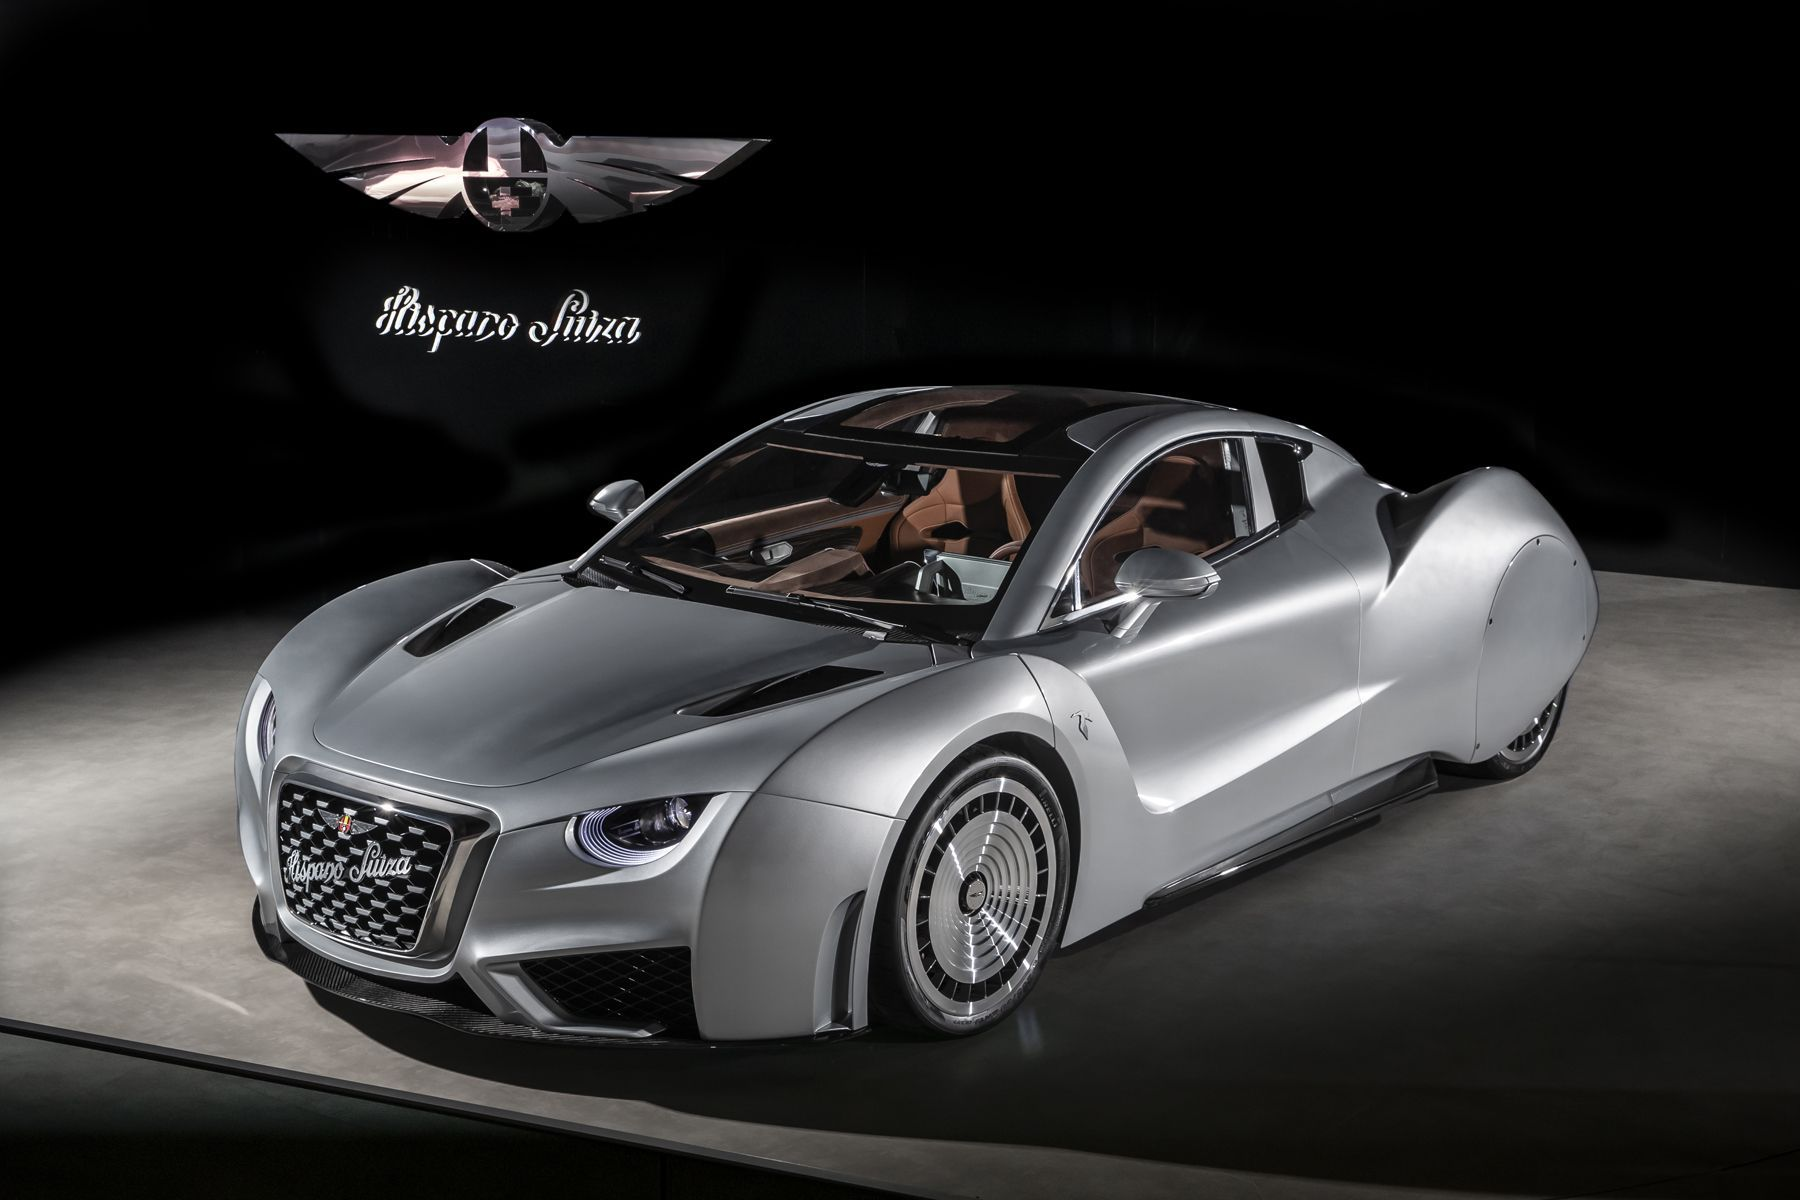 Hispano Suiza S New Carmen Offers 1 000 Horsepower Throwback Styling Voiture Neuve Voiture Occasion Aston Martin